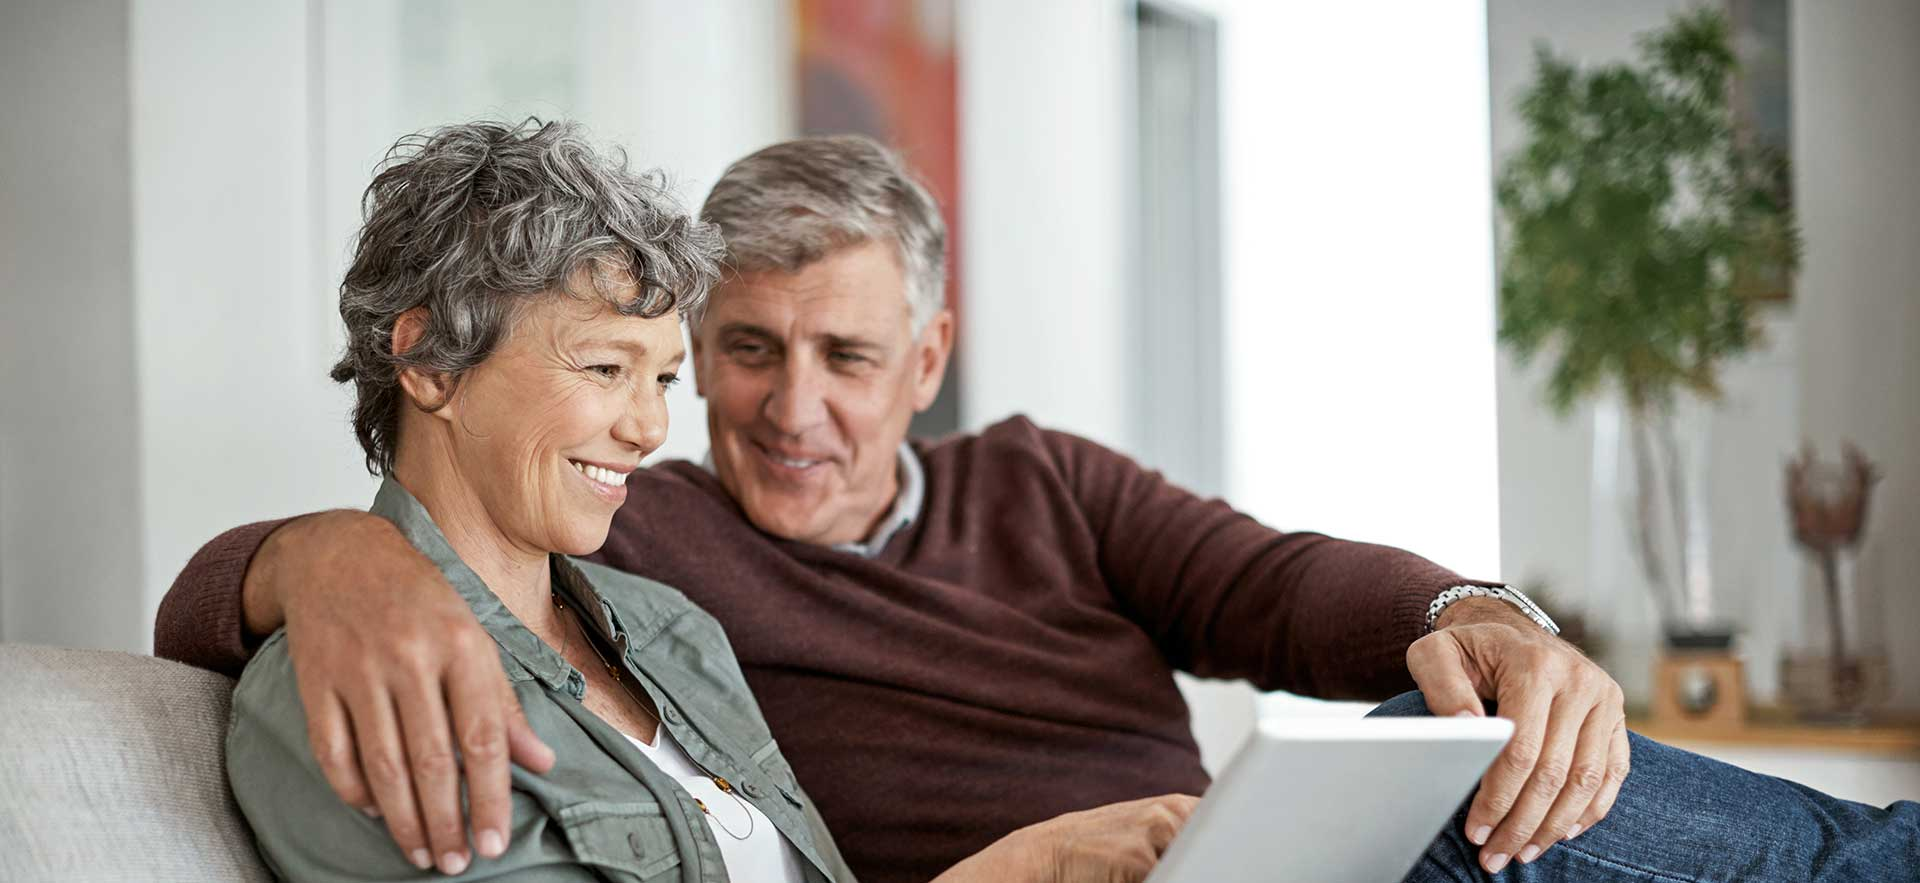 Banner_couple-browsing-web-on-couch